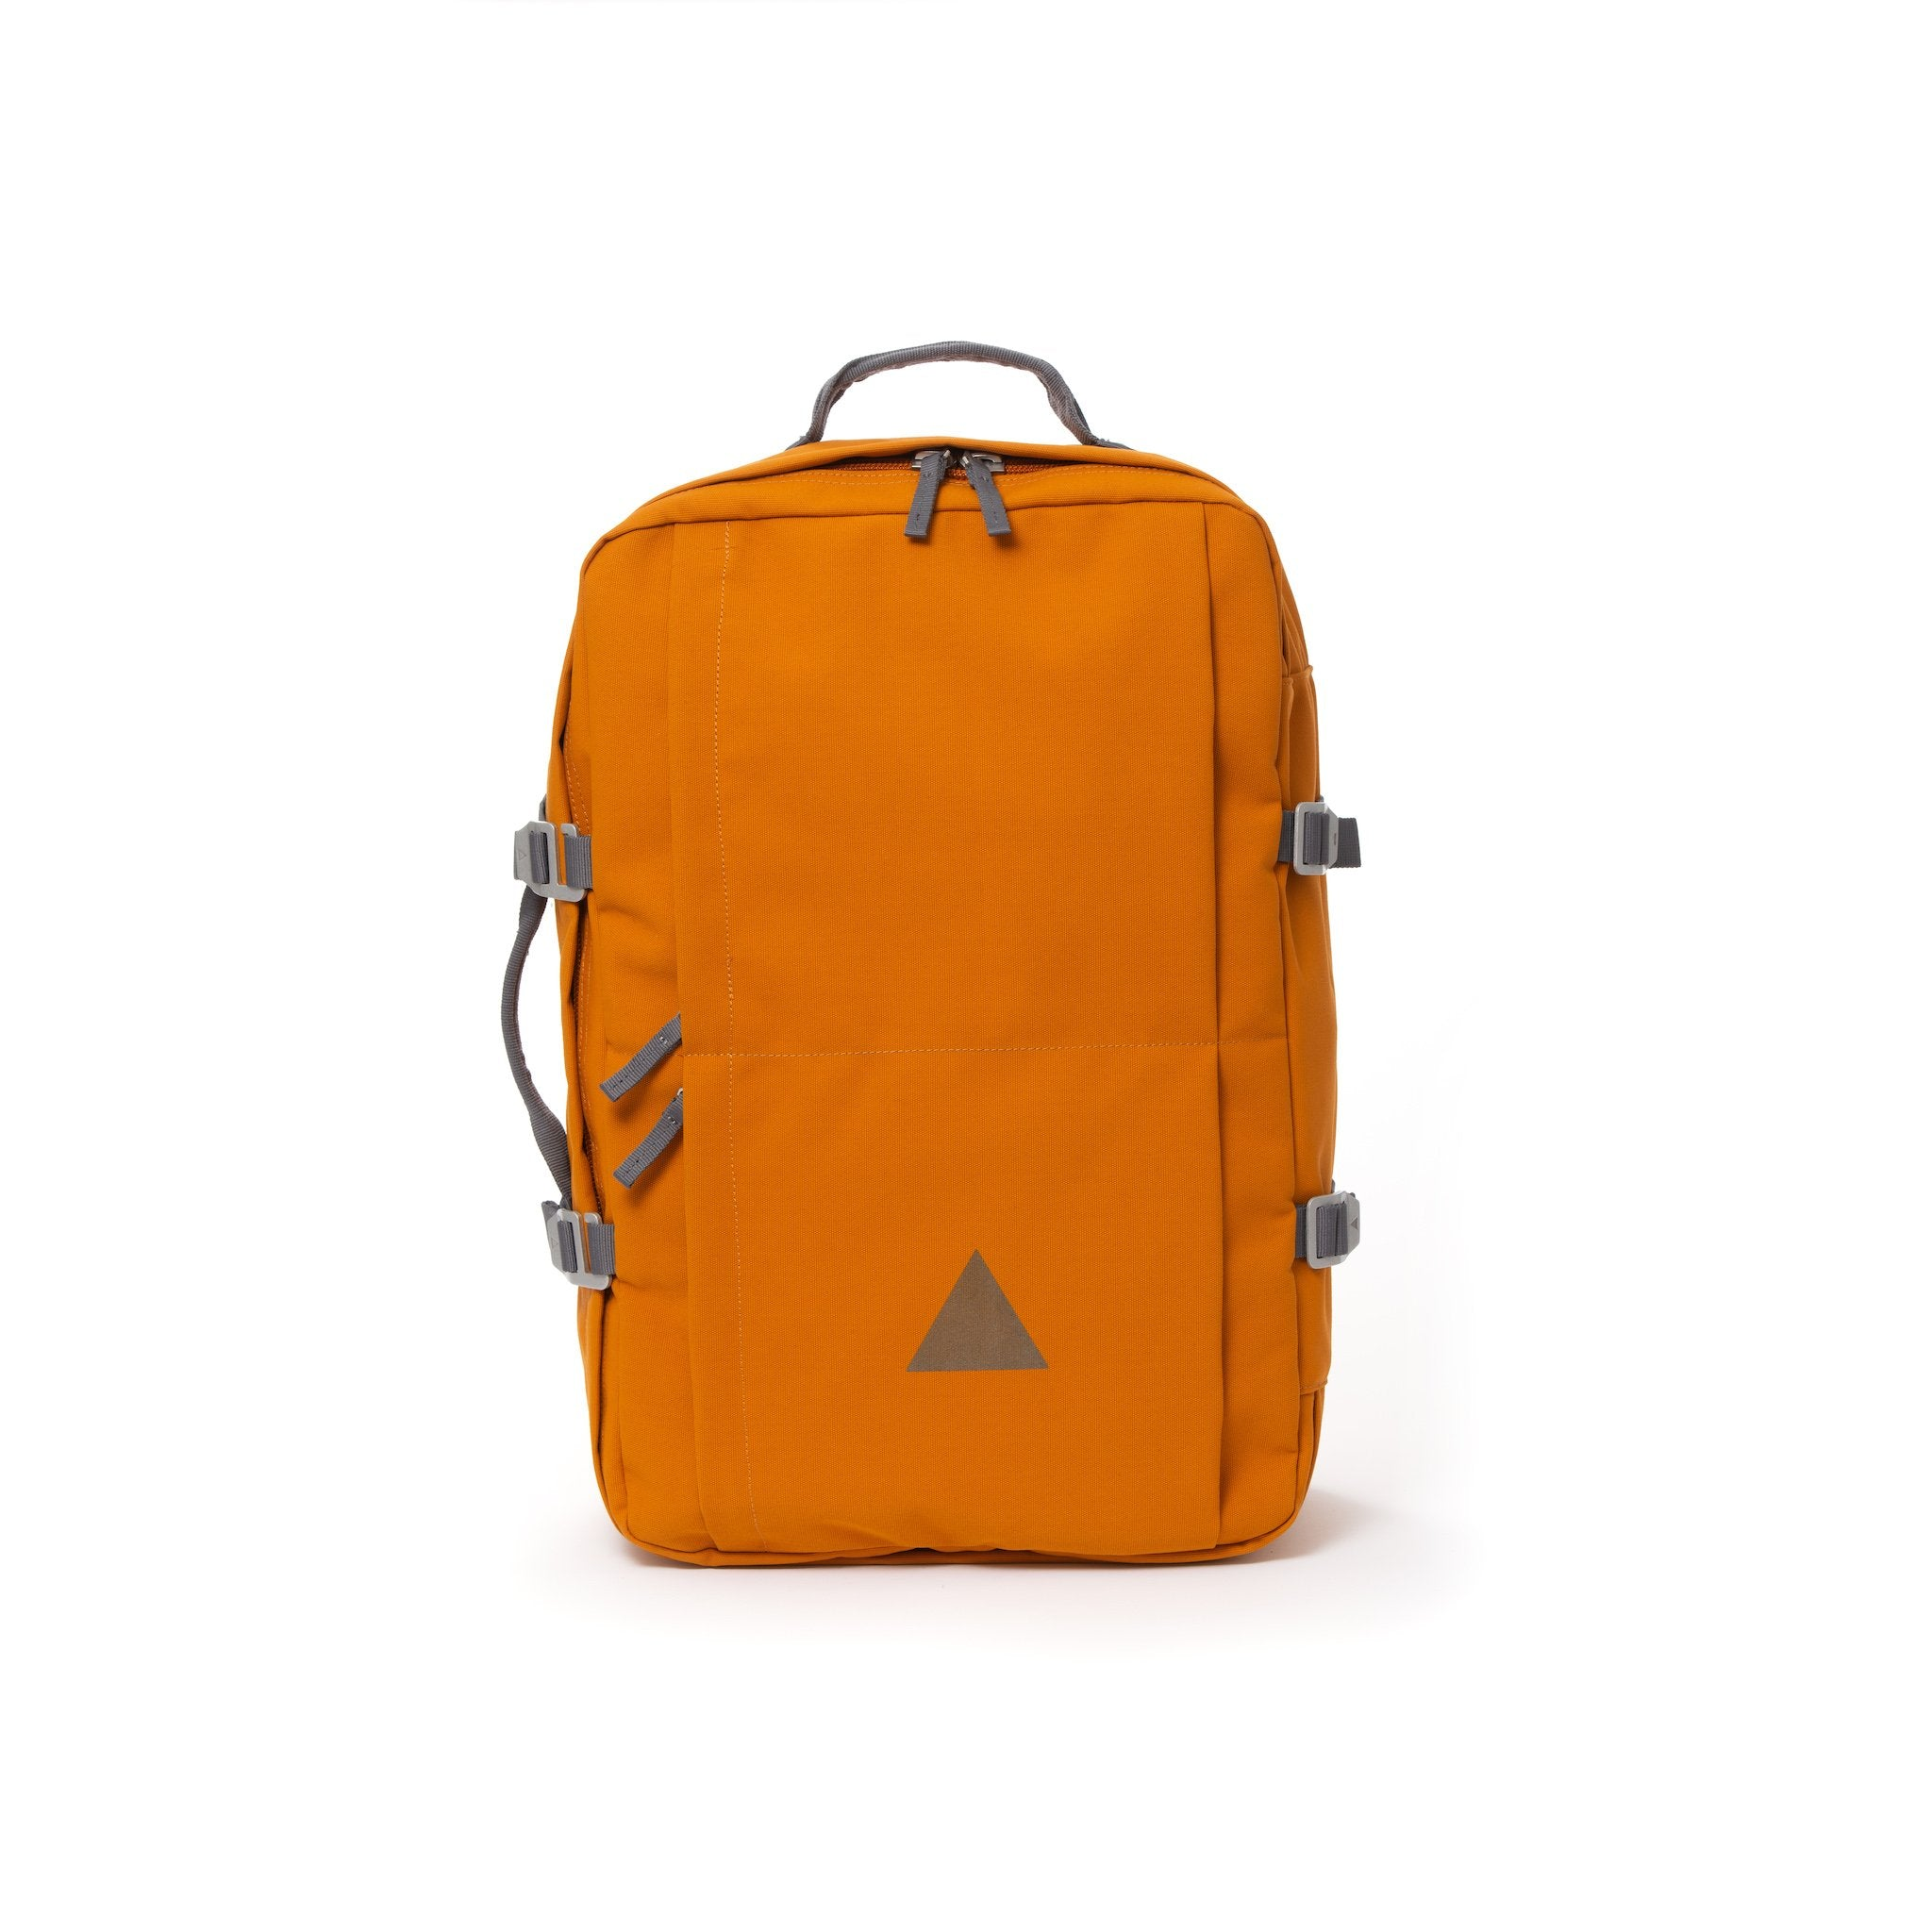 Orange recycled canvas travel backpack.